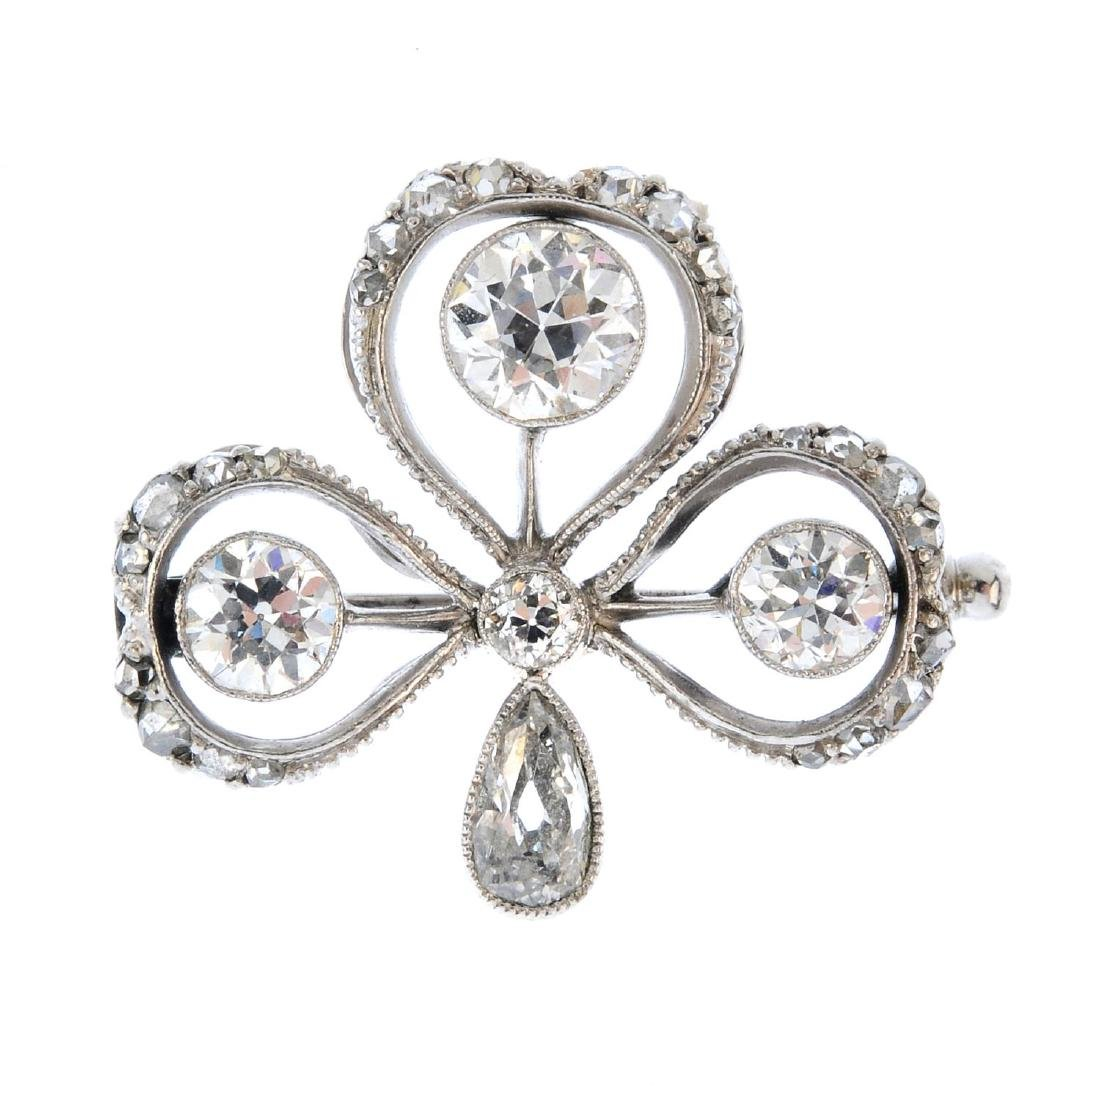 An early 20th century diamond brooch. Designed as a